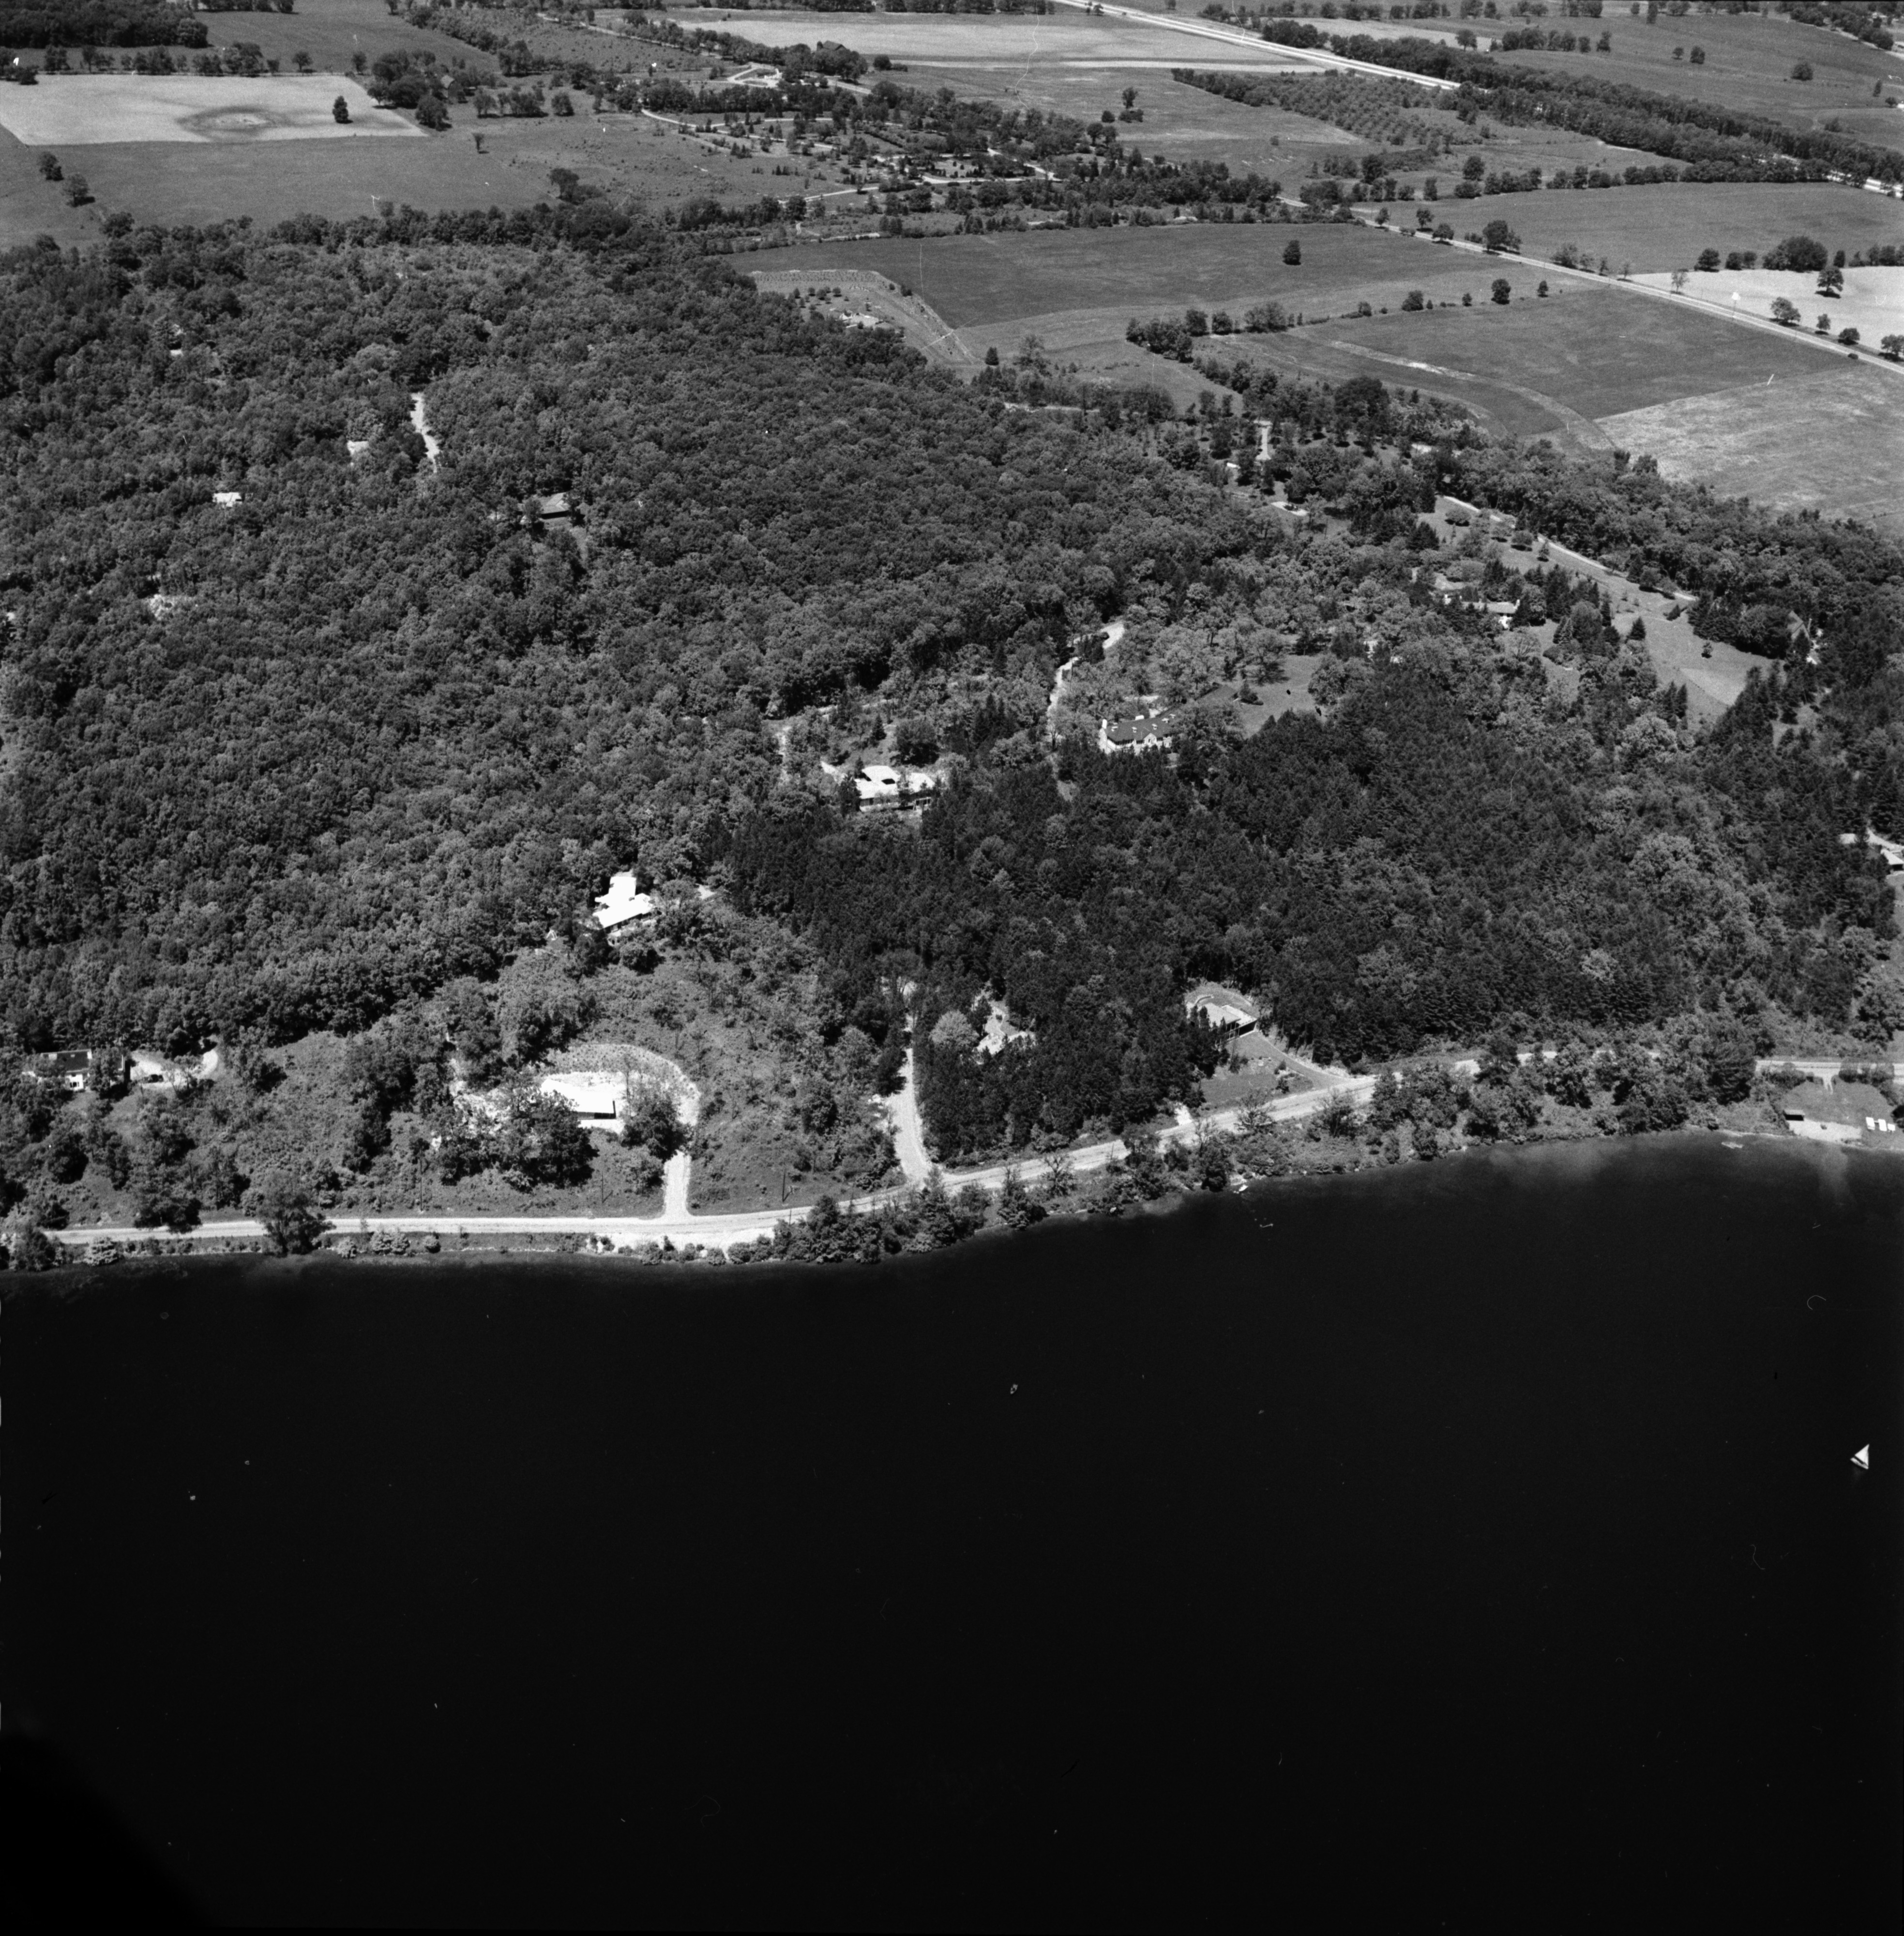 Aerial Photograph of the Huron River Along Barton Shores Drive, July 1957 image